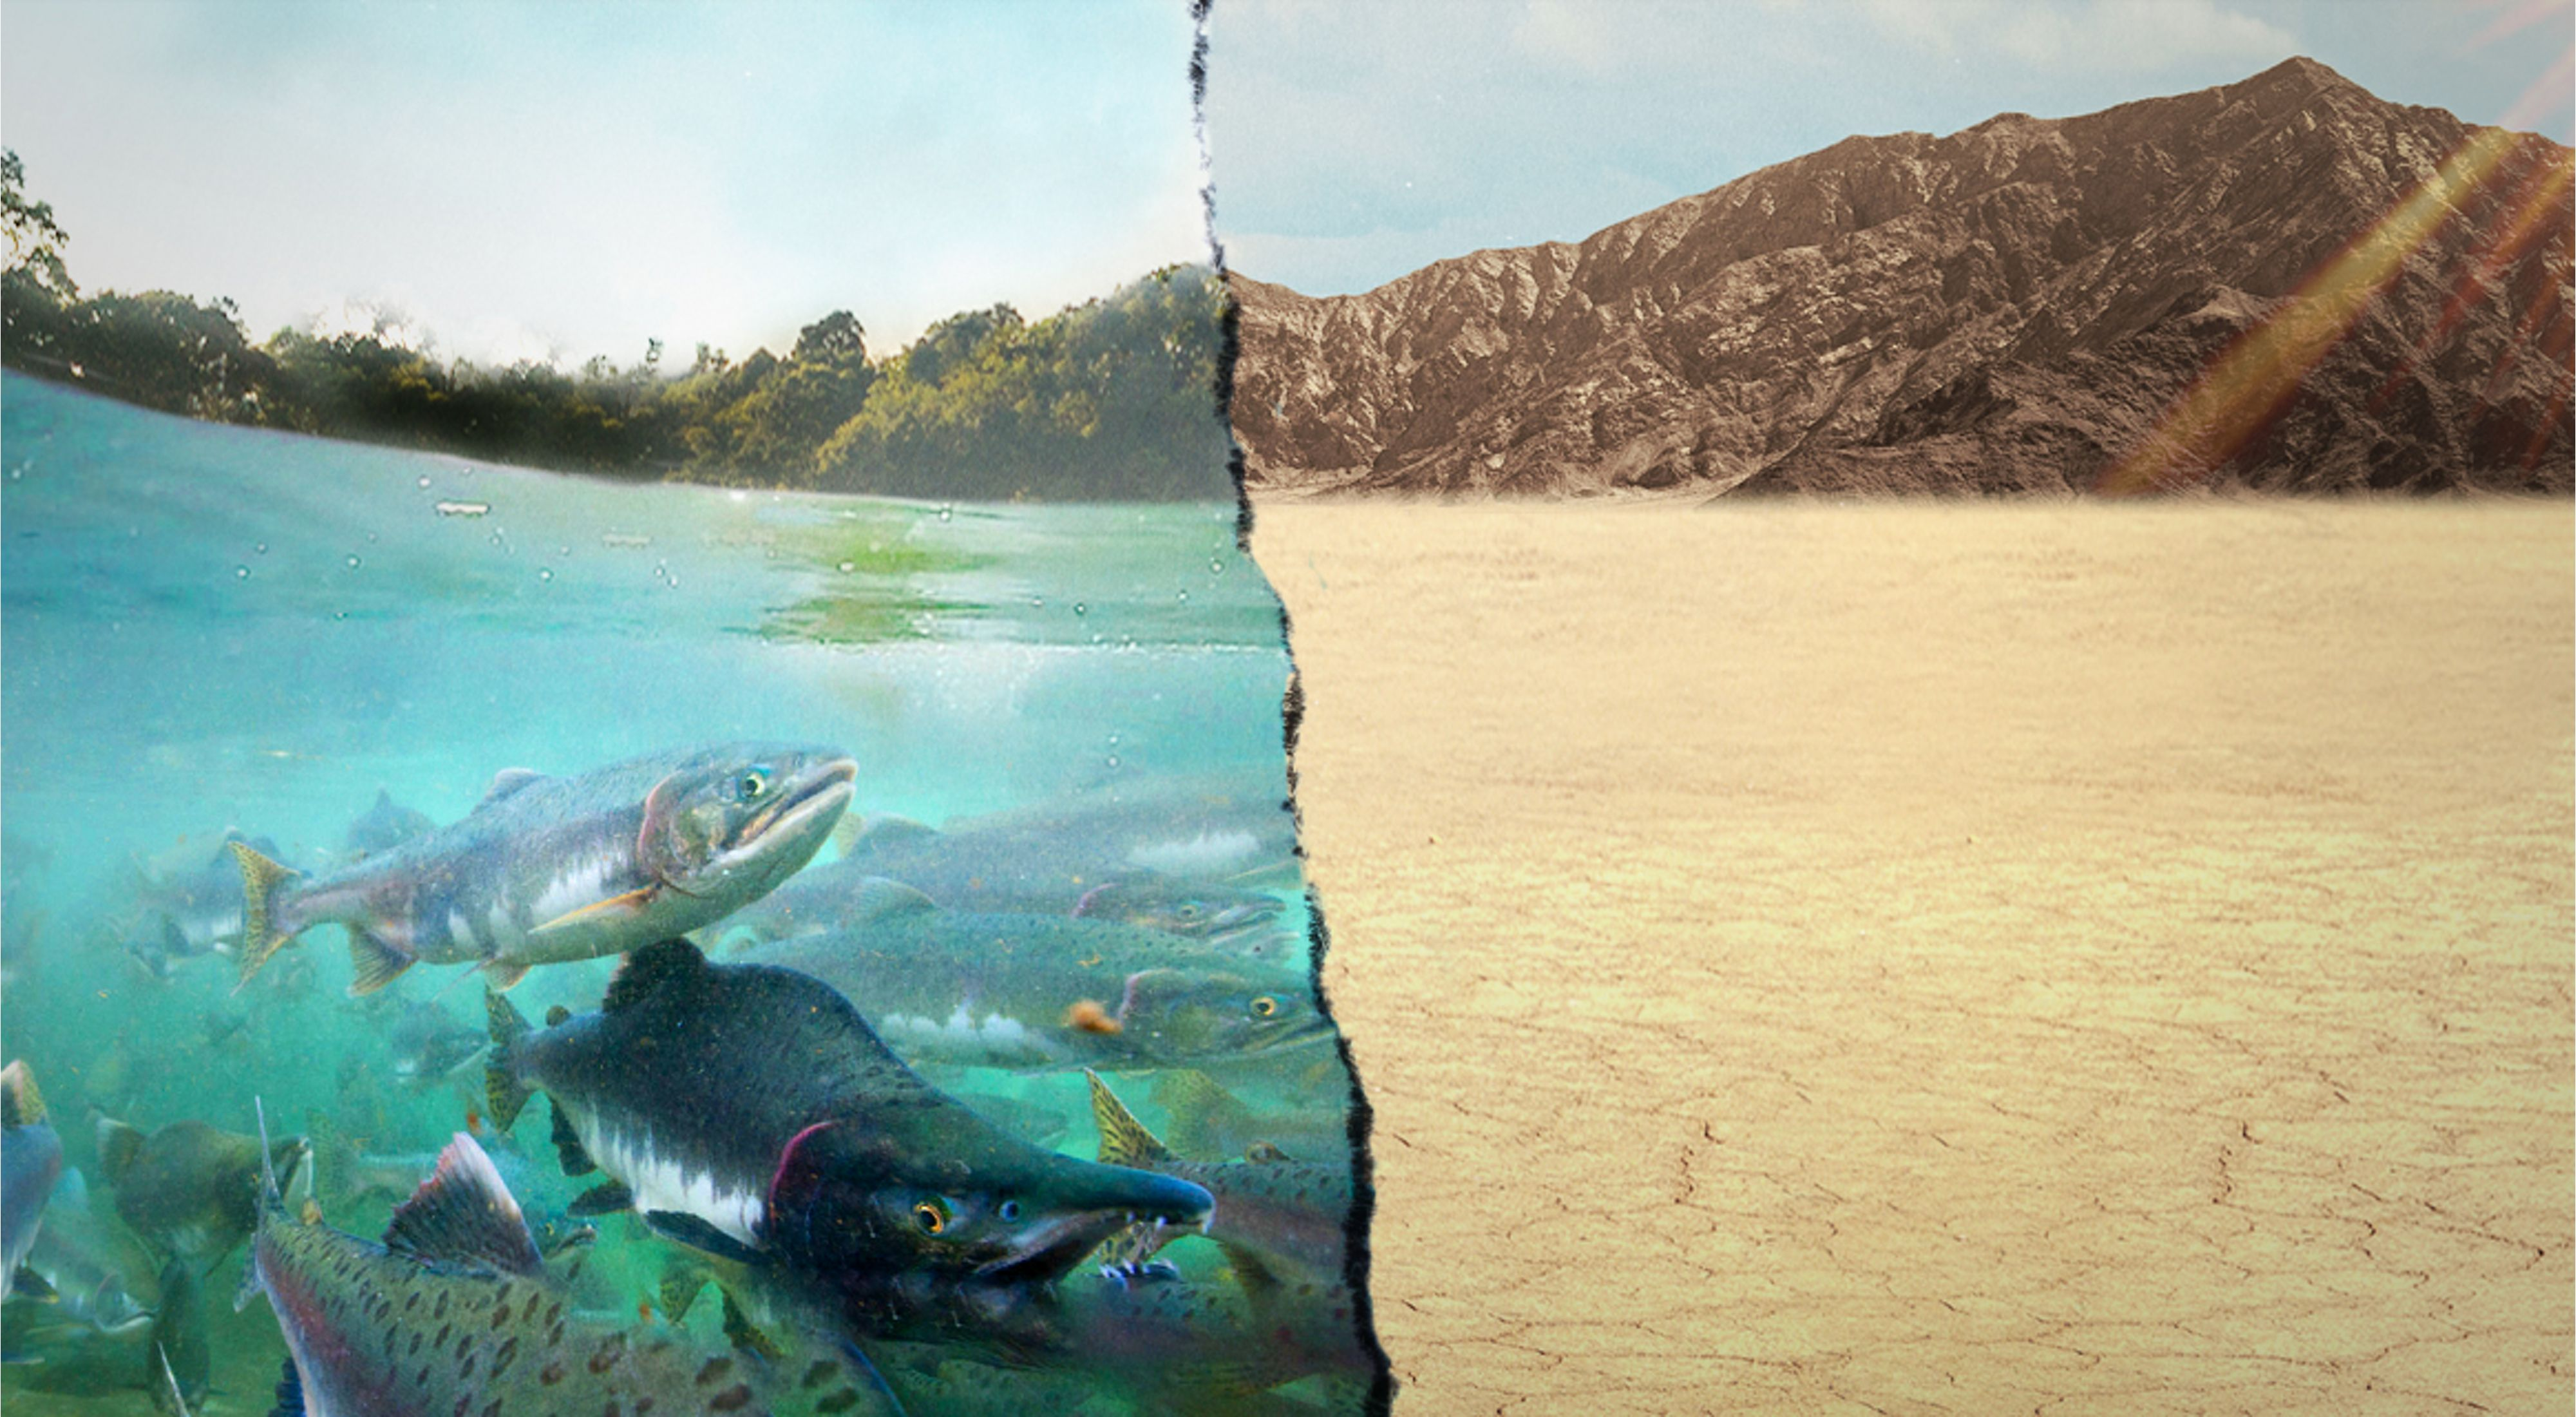 Split image of fish in a river and an empty river bed.